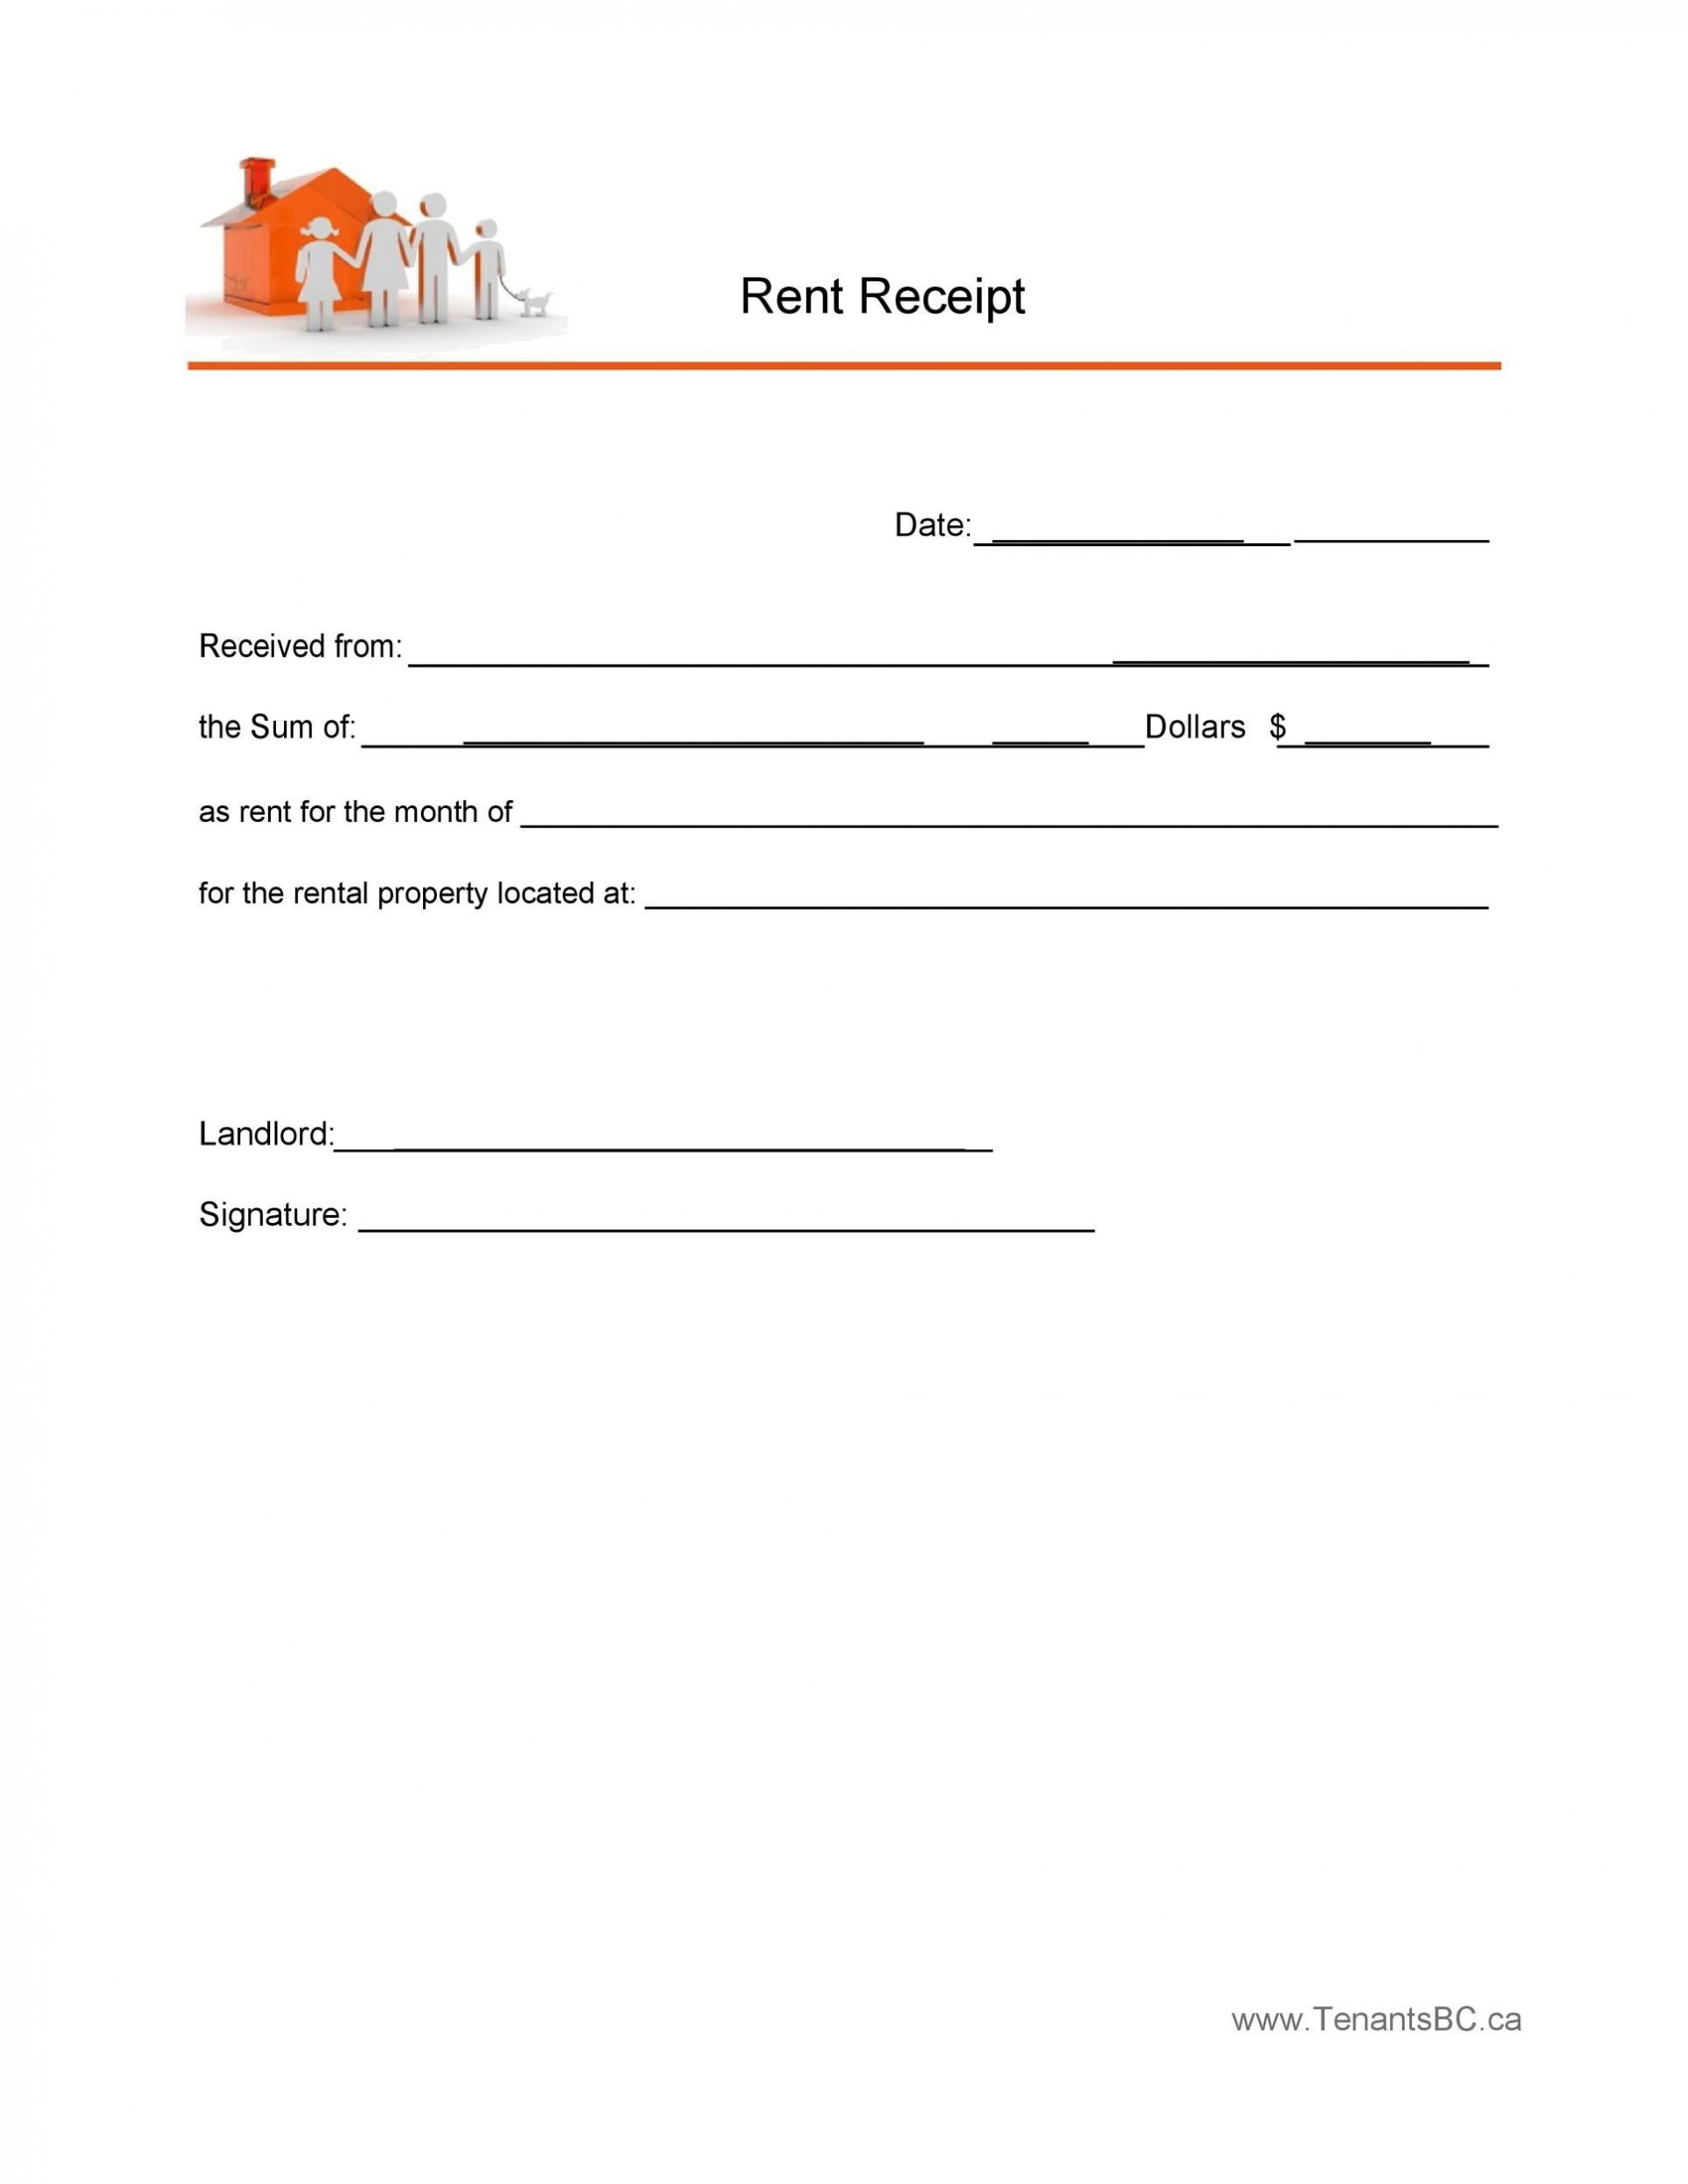 005 Staggering Sample Rent Receipt Word Doc Concept 1920